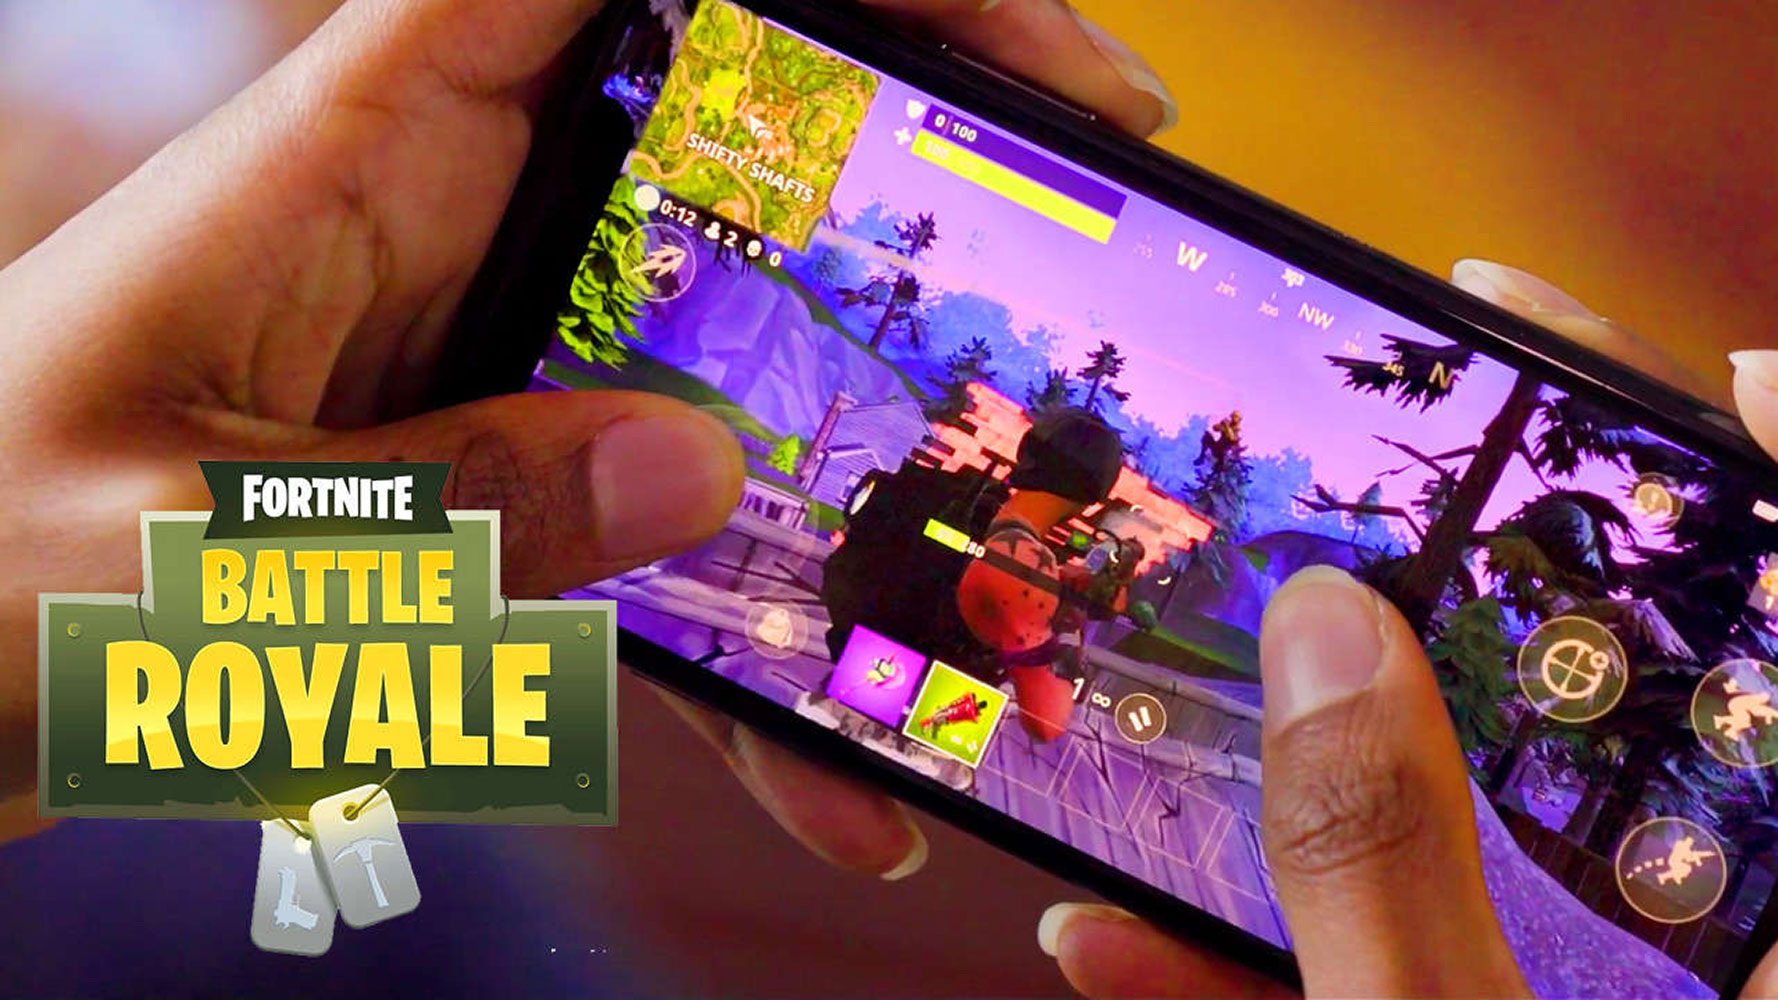 fortnite android download ita epic games